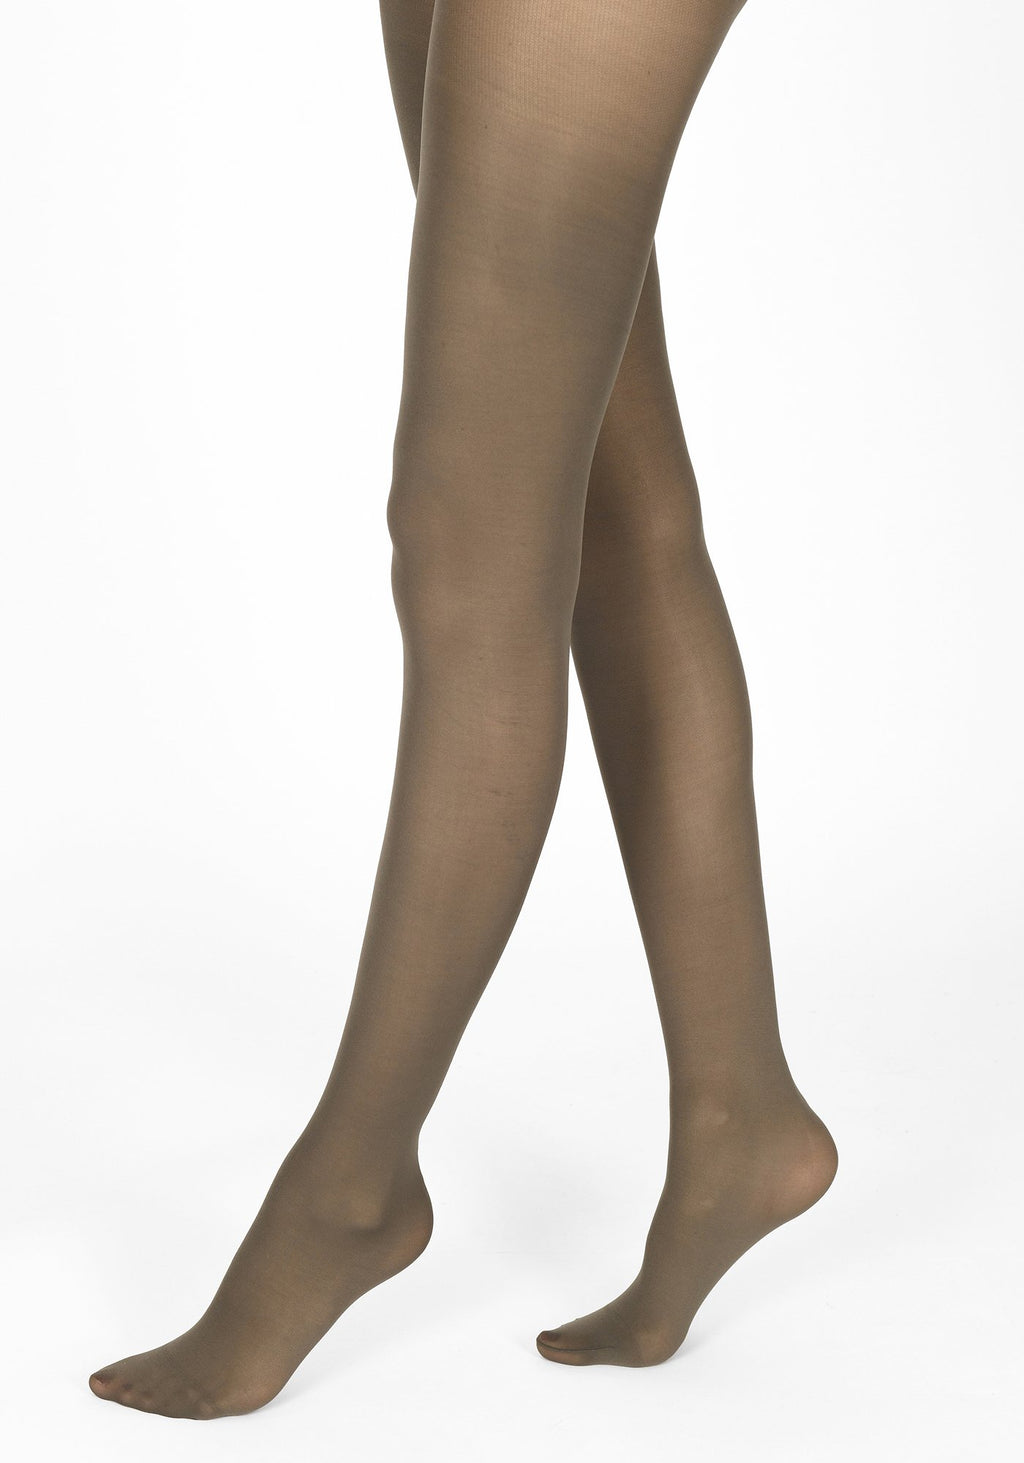 storm grey tights 40 denier 1